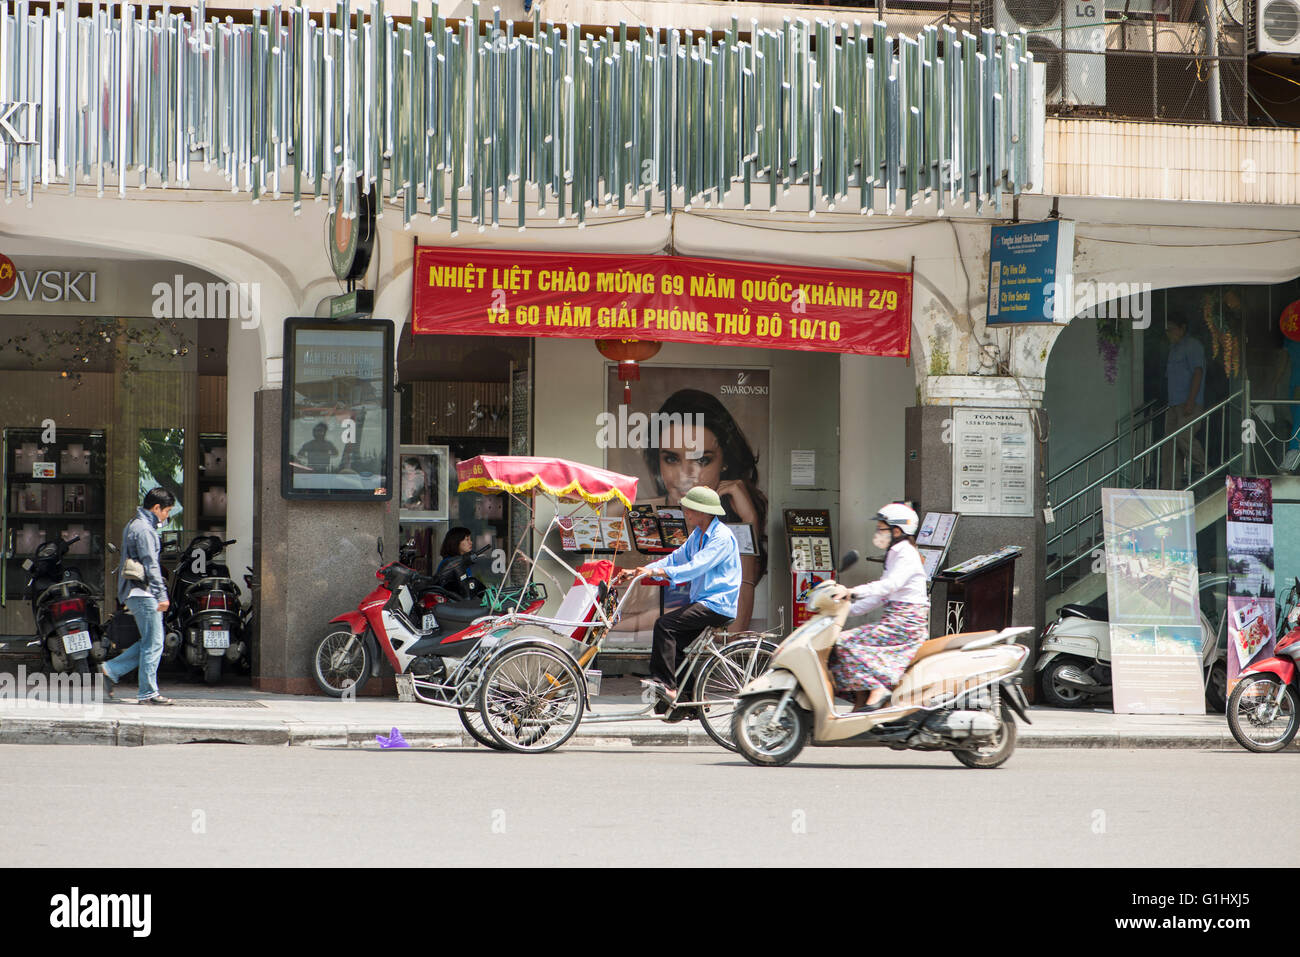 New Shops In Old Hanoi And Old Forms Of Transport Stock Photo Alamy